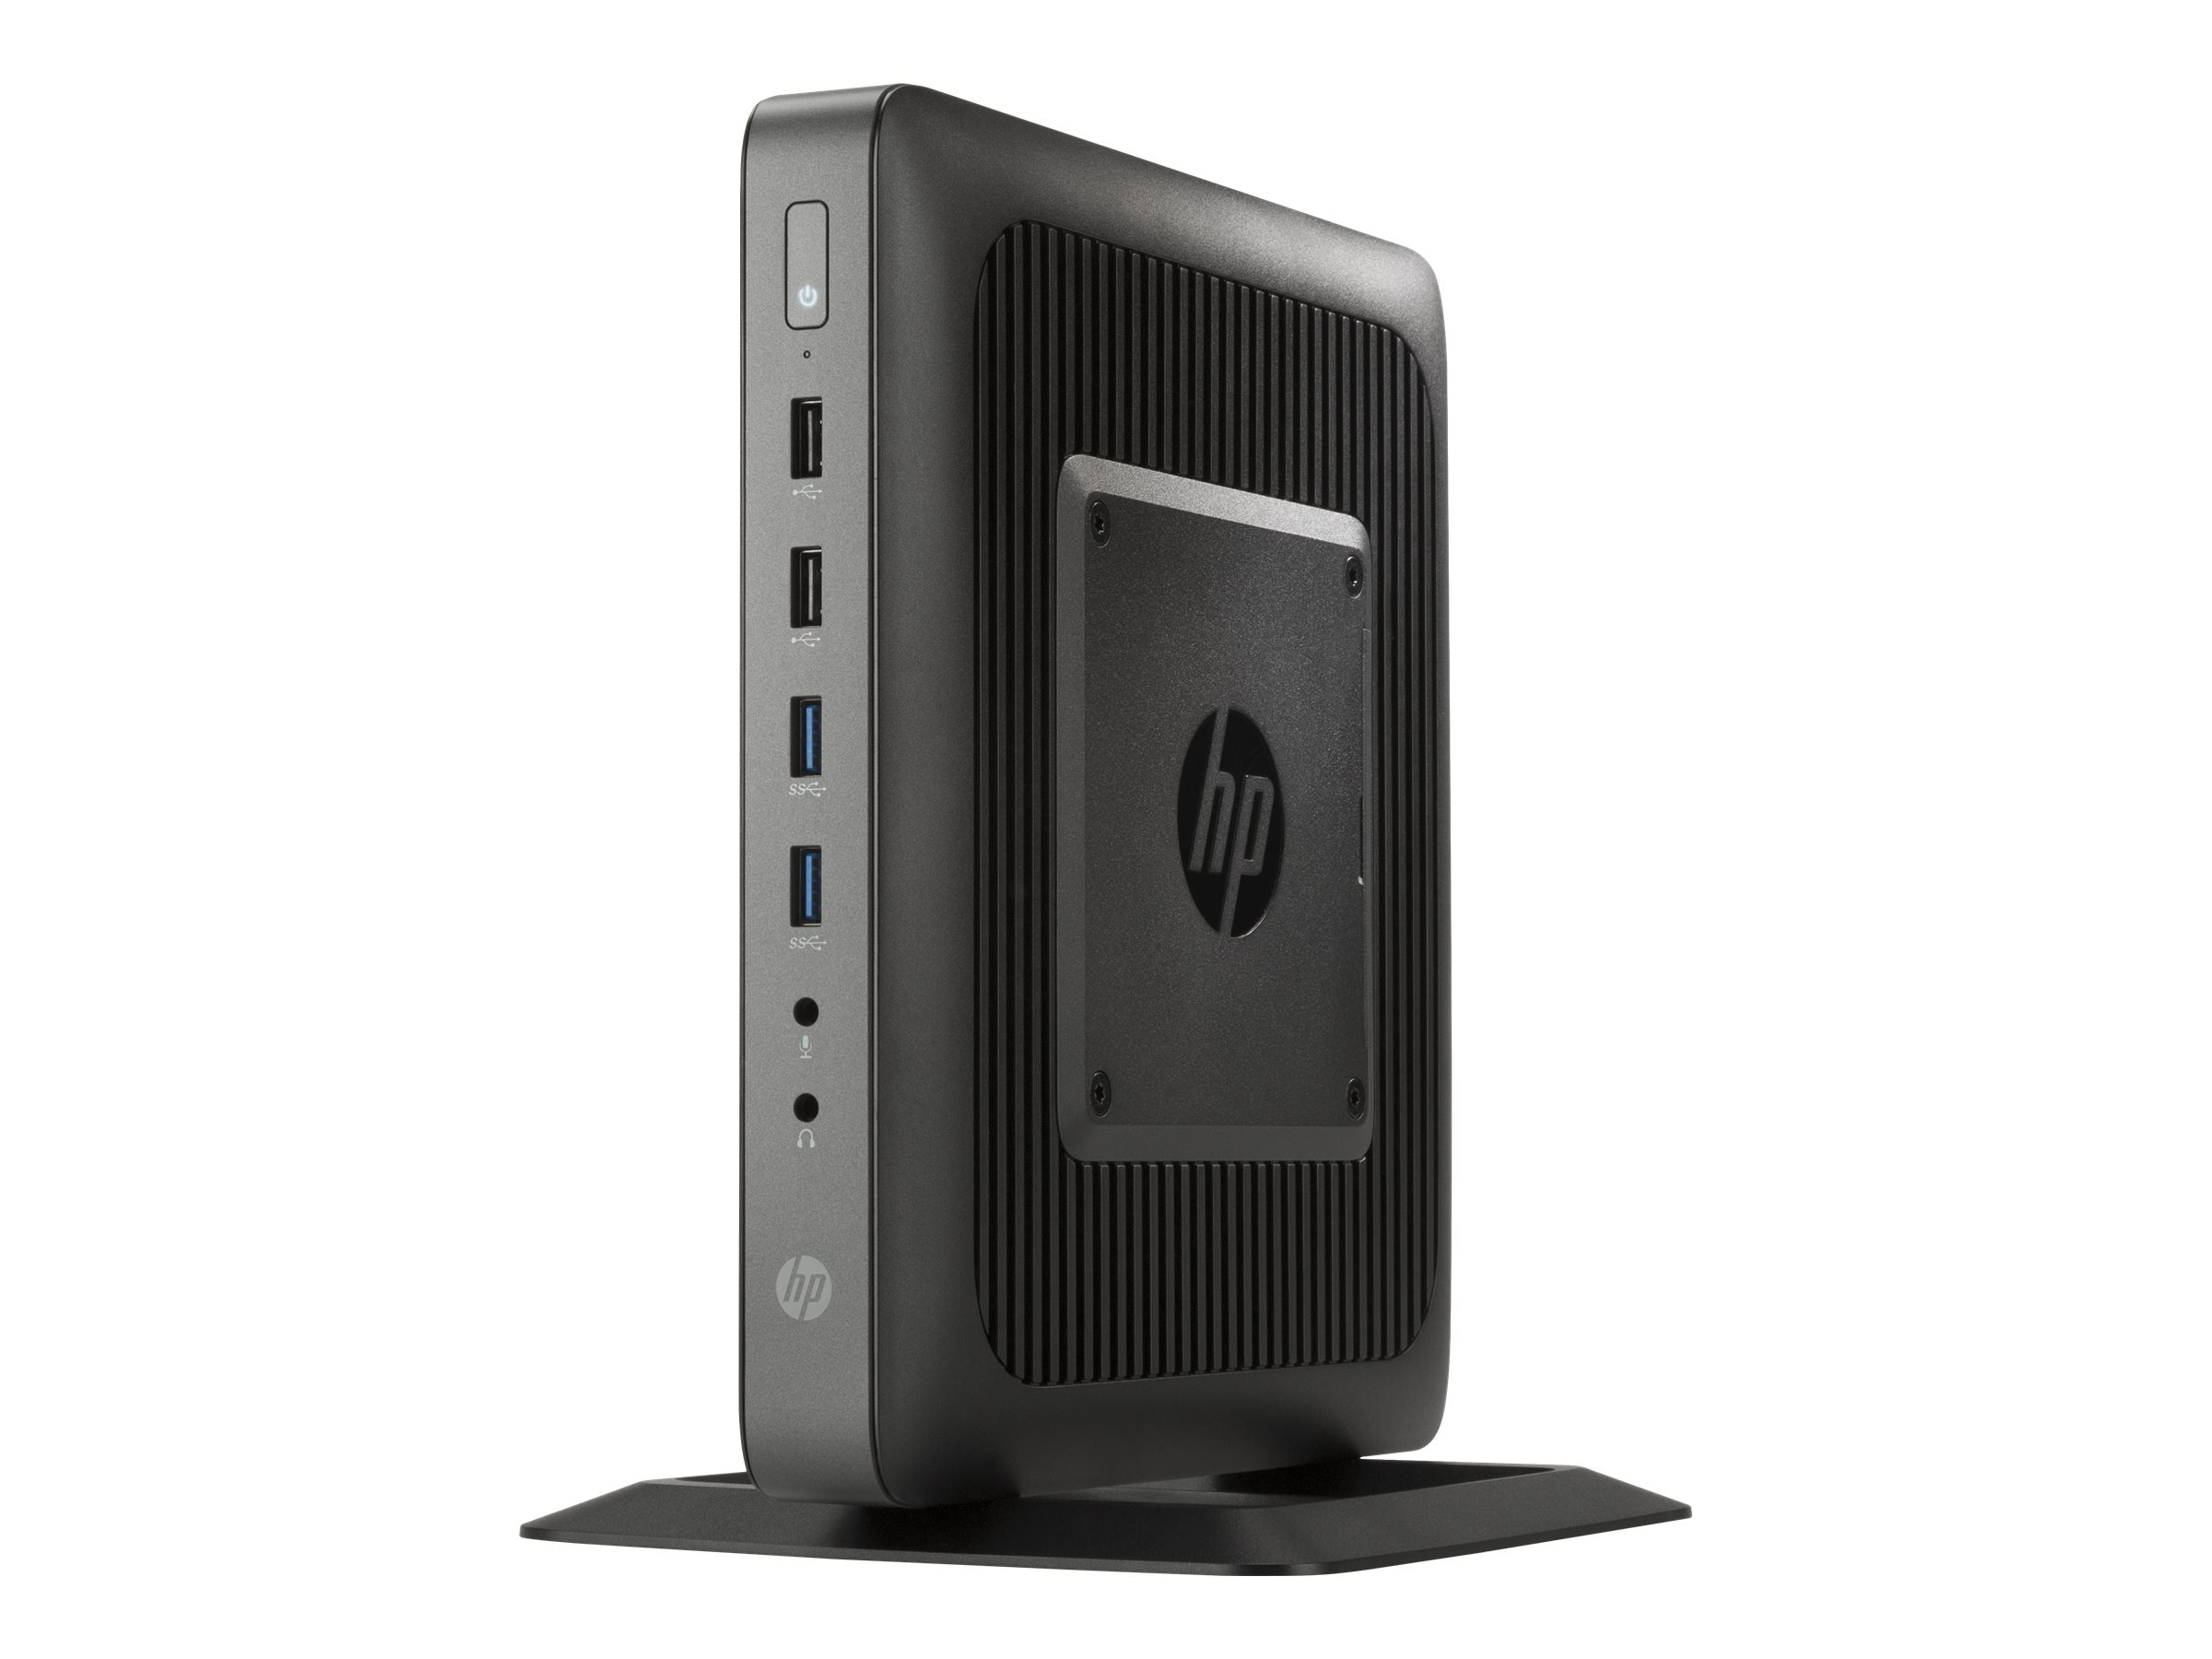 HP t620 Flexible Thin Client AMD QC GX-415GA 1.5GHz 4GB 64GB Flash HD8330E ac BT WES7P